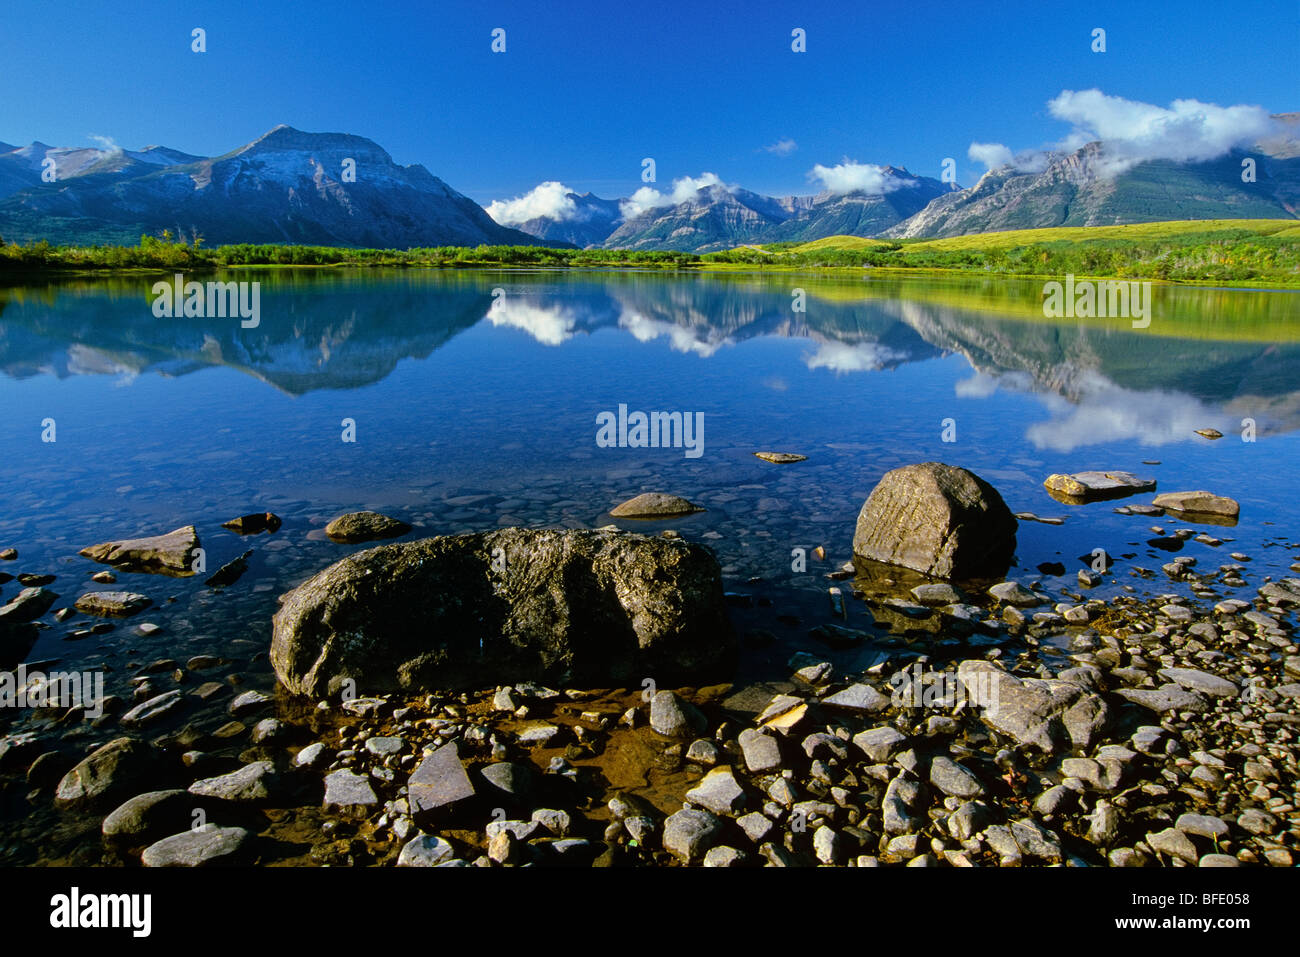 Vimy Peak and Lower Waterton Lake, Waterton Lakes National Park, Alberta, Canada - Stock Image